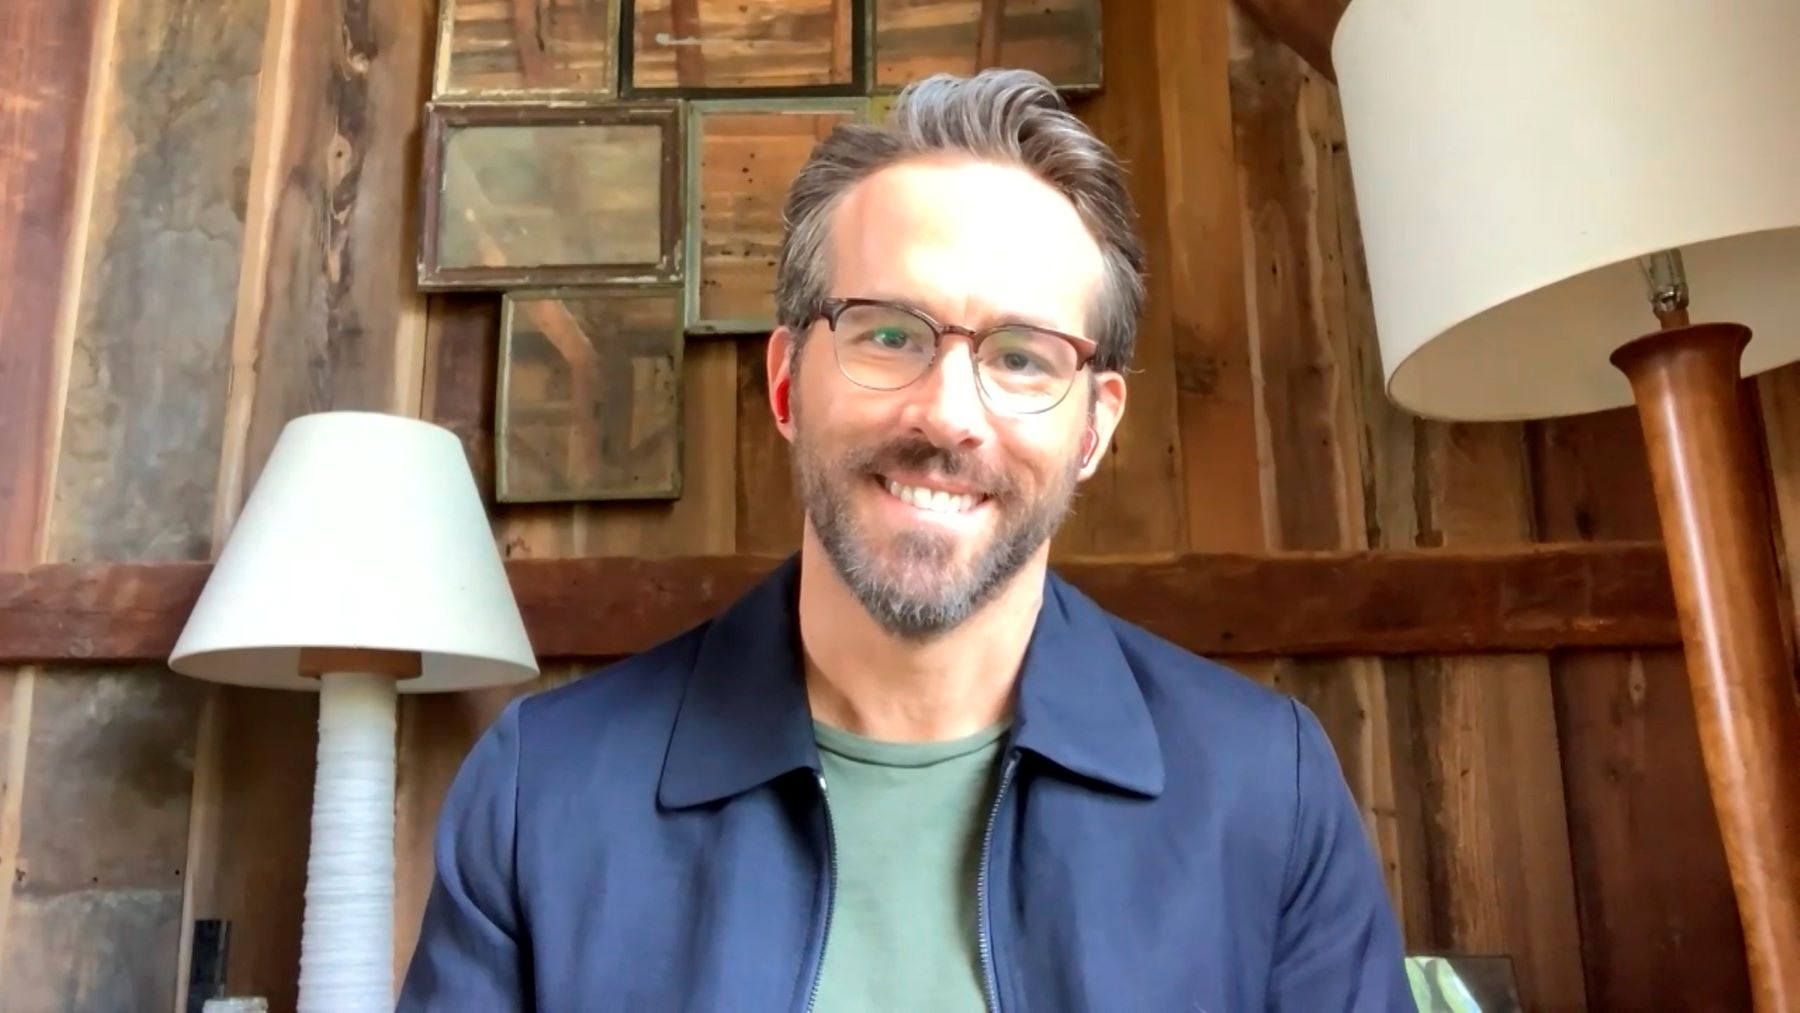 Ryan Reynolds appearing on 'The Tonight Show Starring Jimmy Fallon'